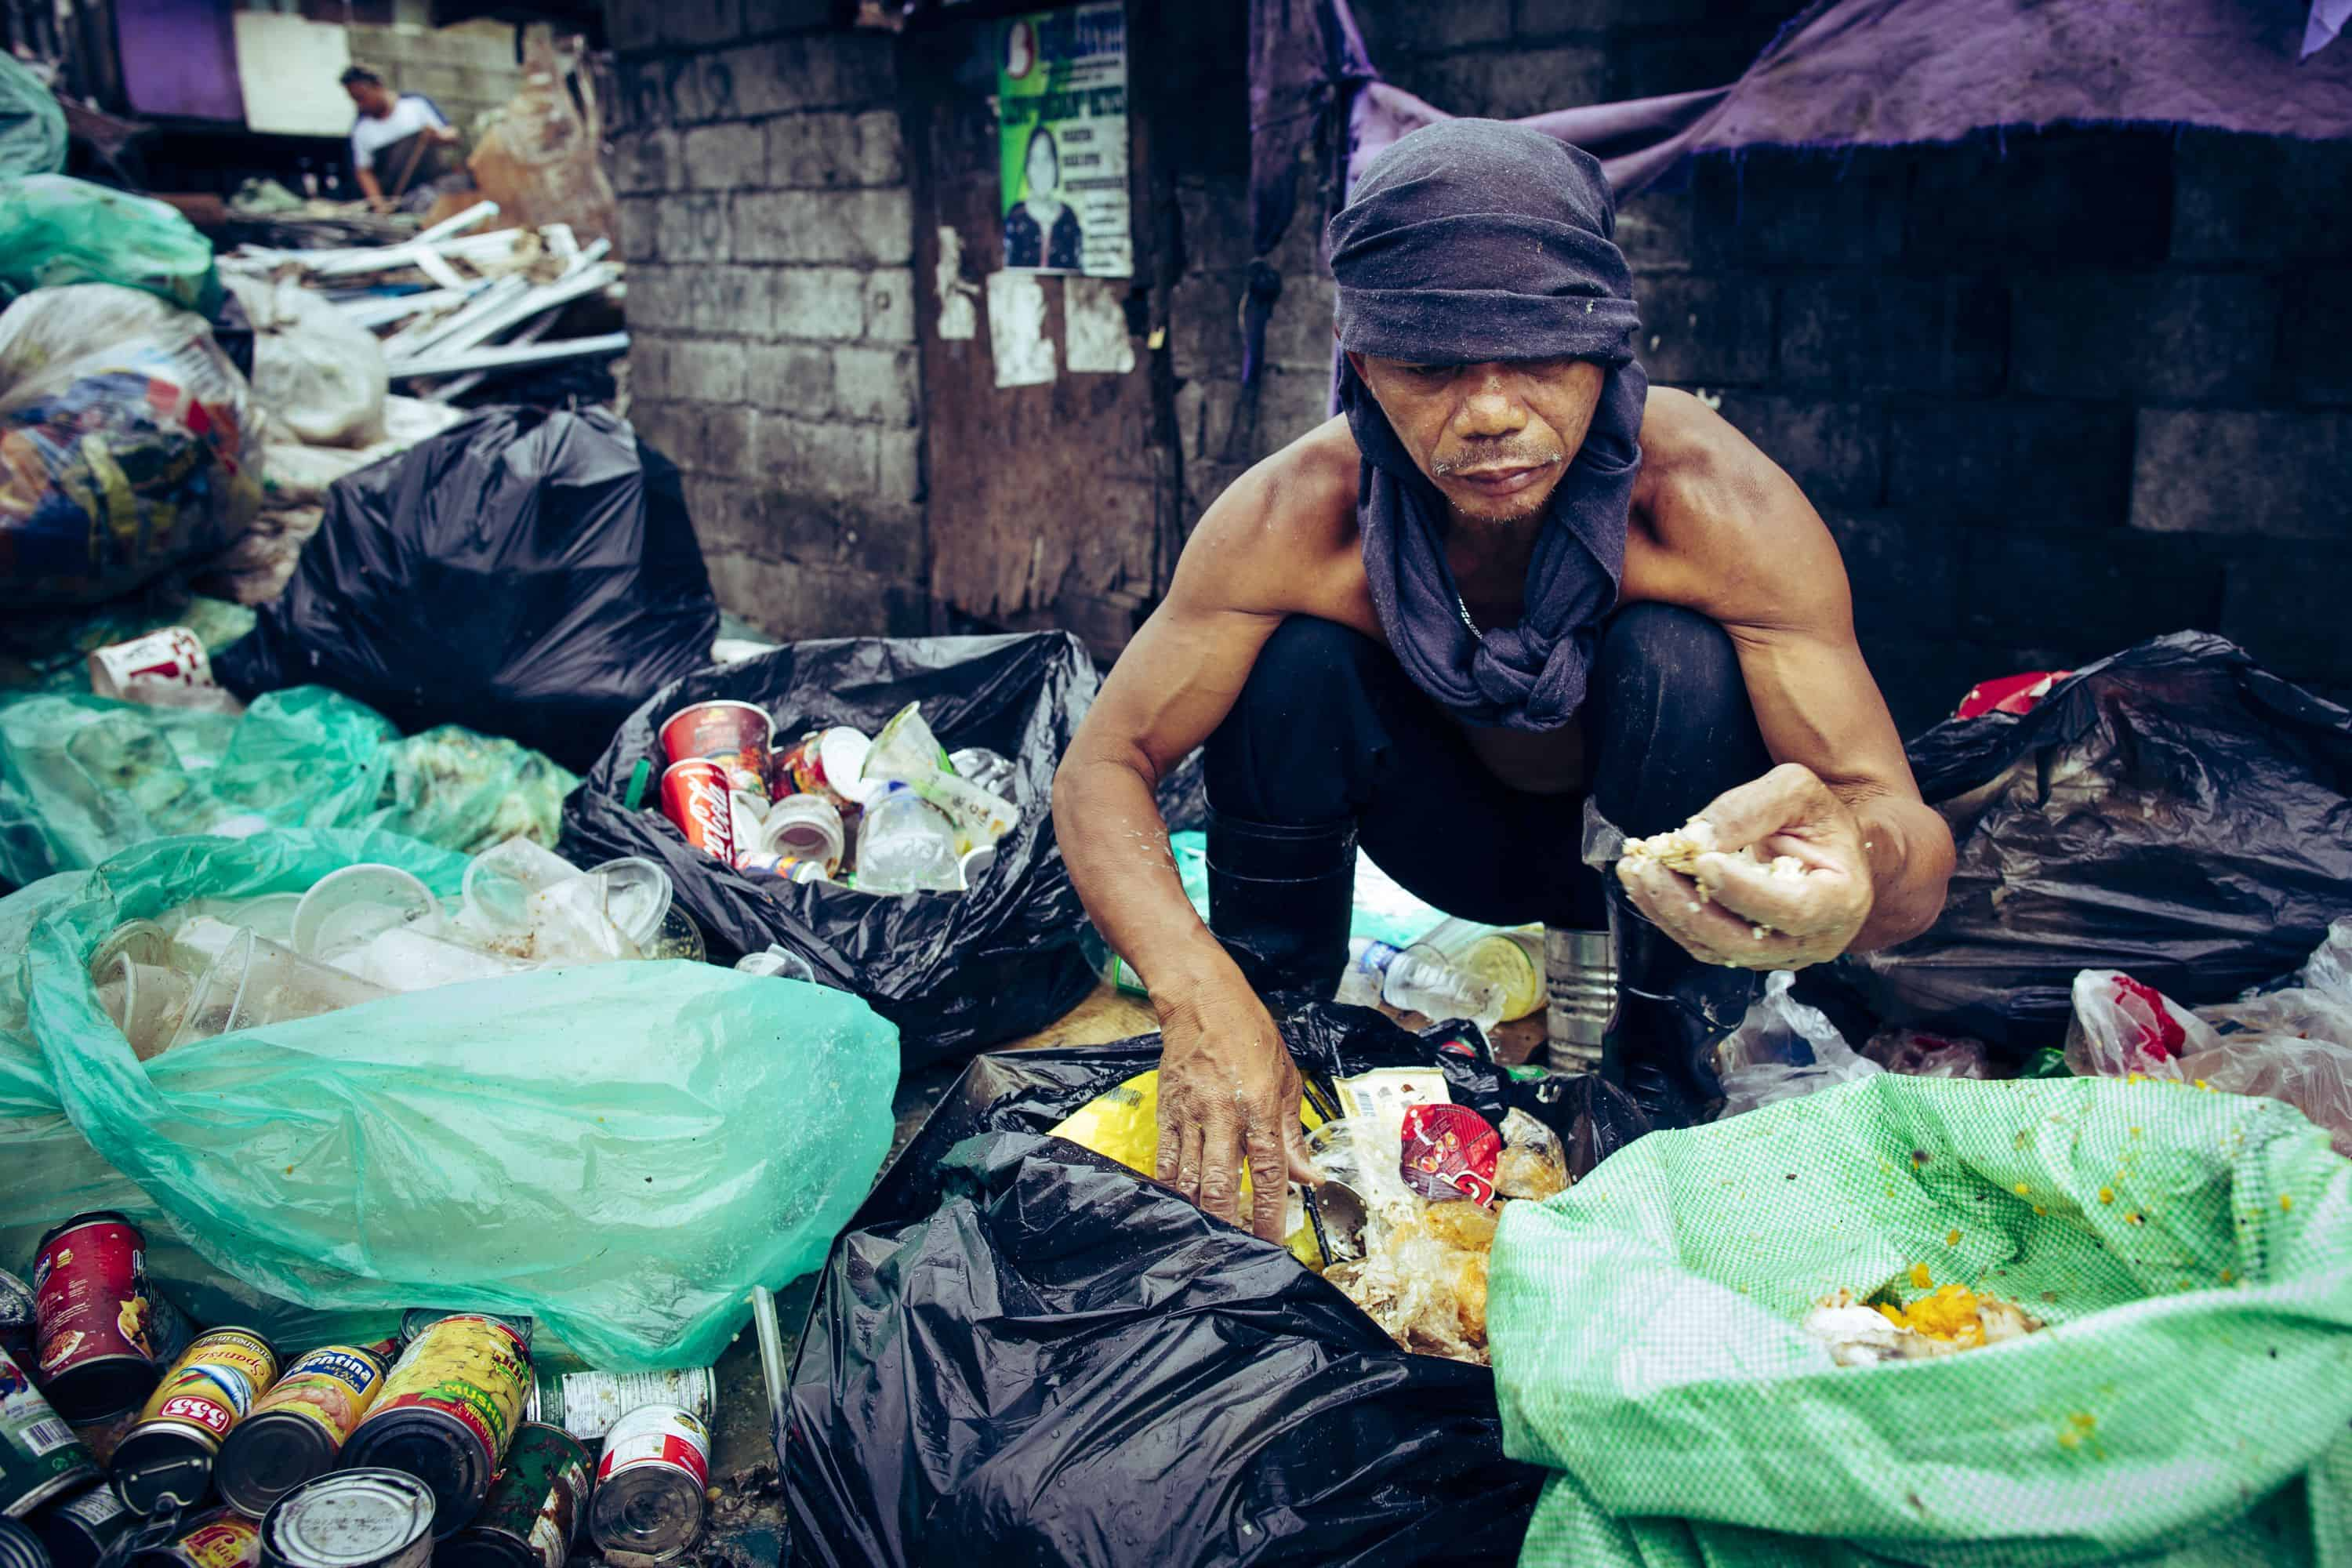 Scavenging for already-eaten food that can be recooked and sold is a common source of income in Tondo.